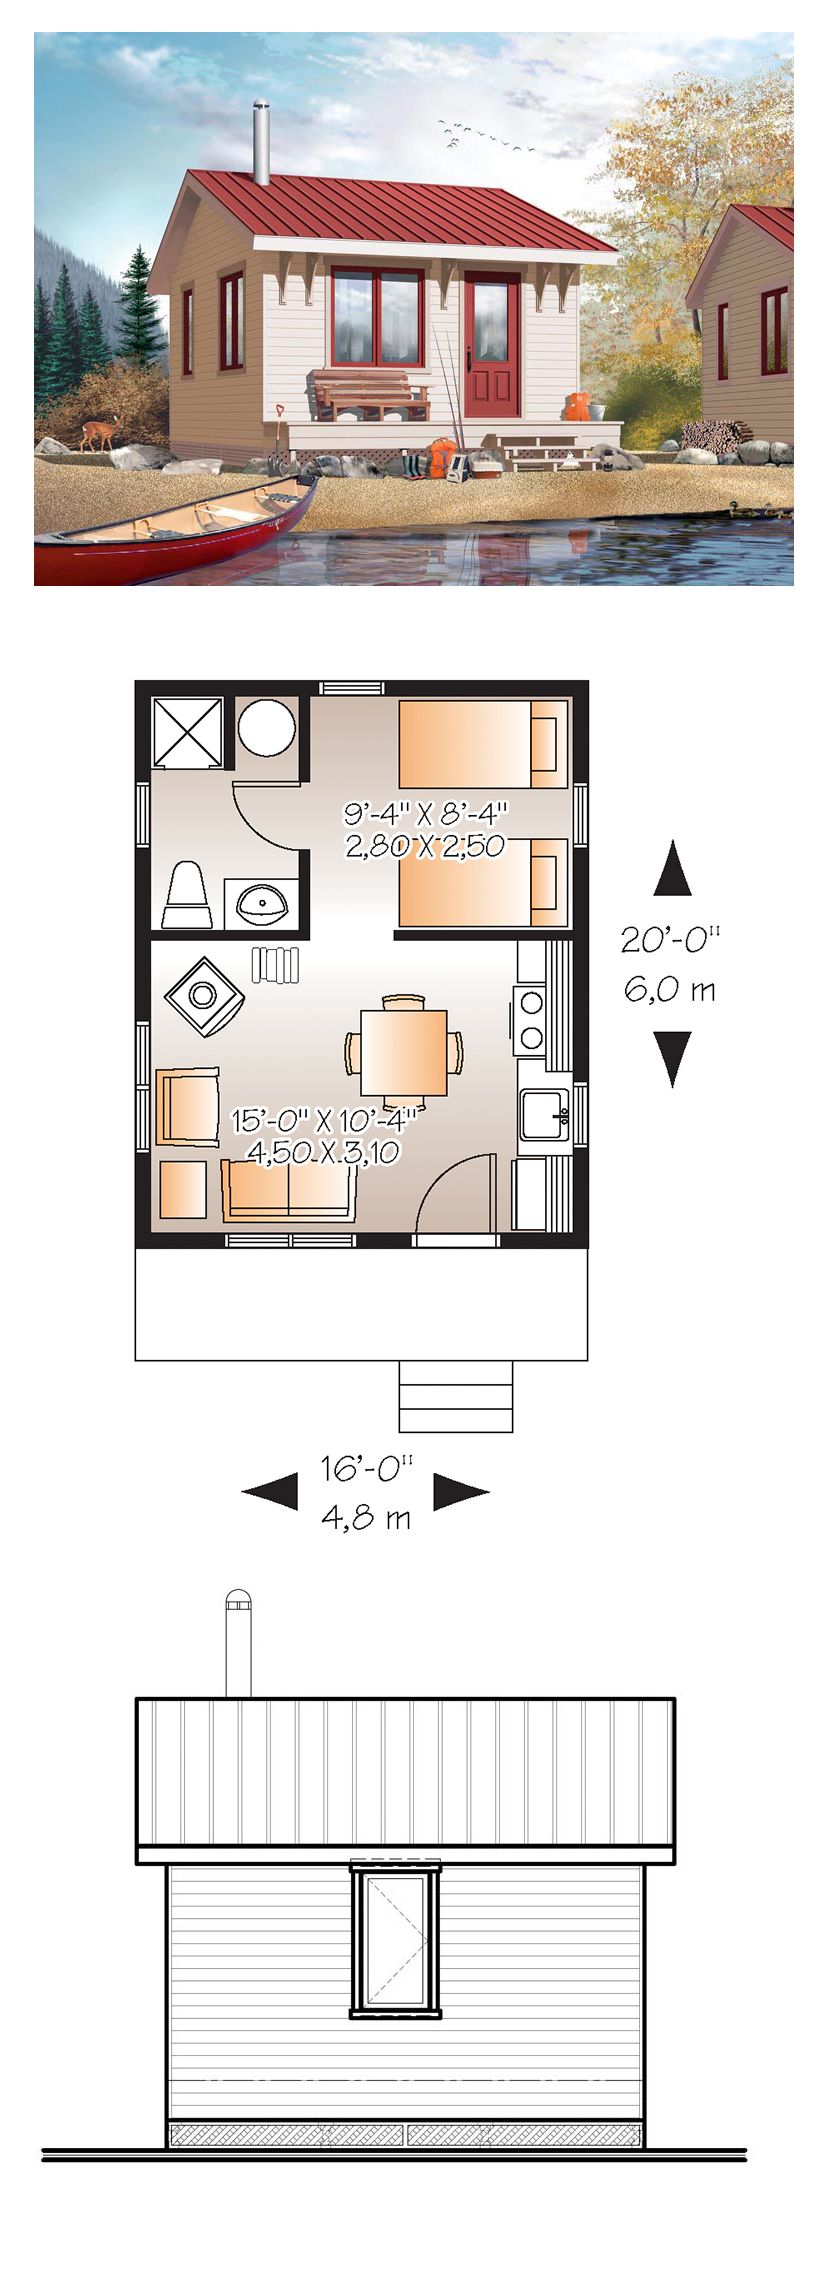 Terrific Cabin Style House Plan Number 76163 With 1 Bed 1 Bath In Interior Design Ideas Clesiryabchikinfo